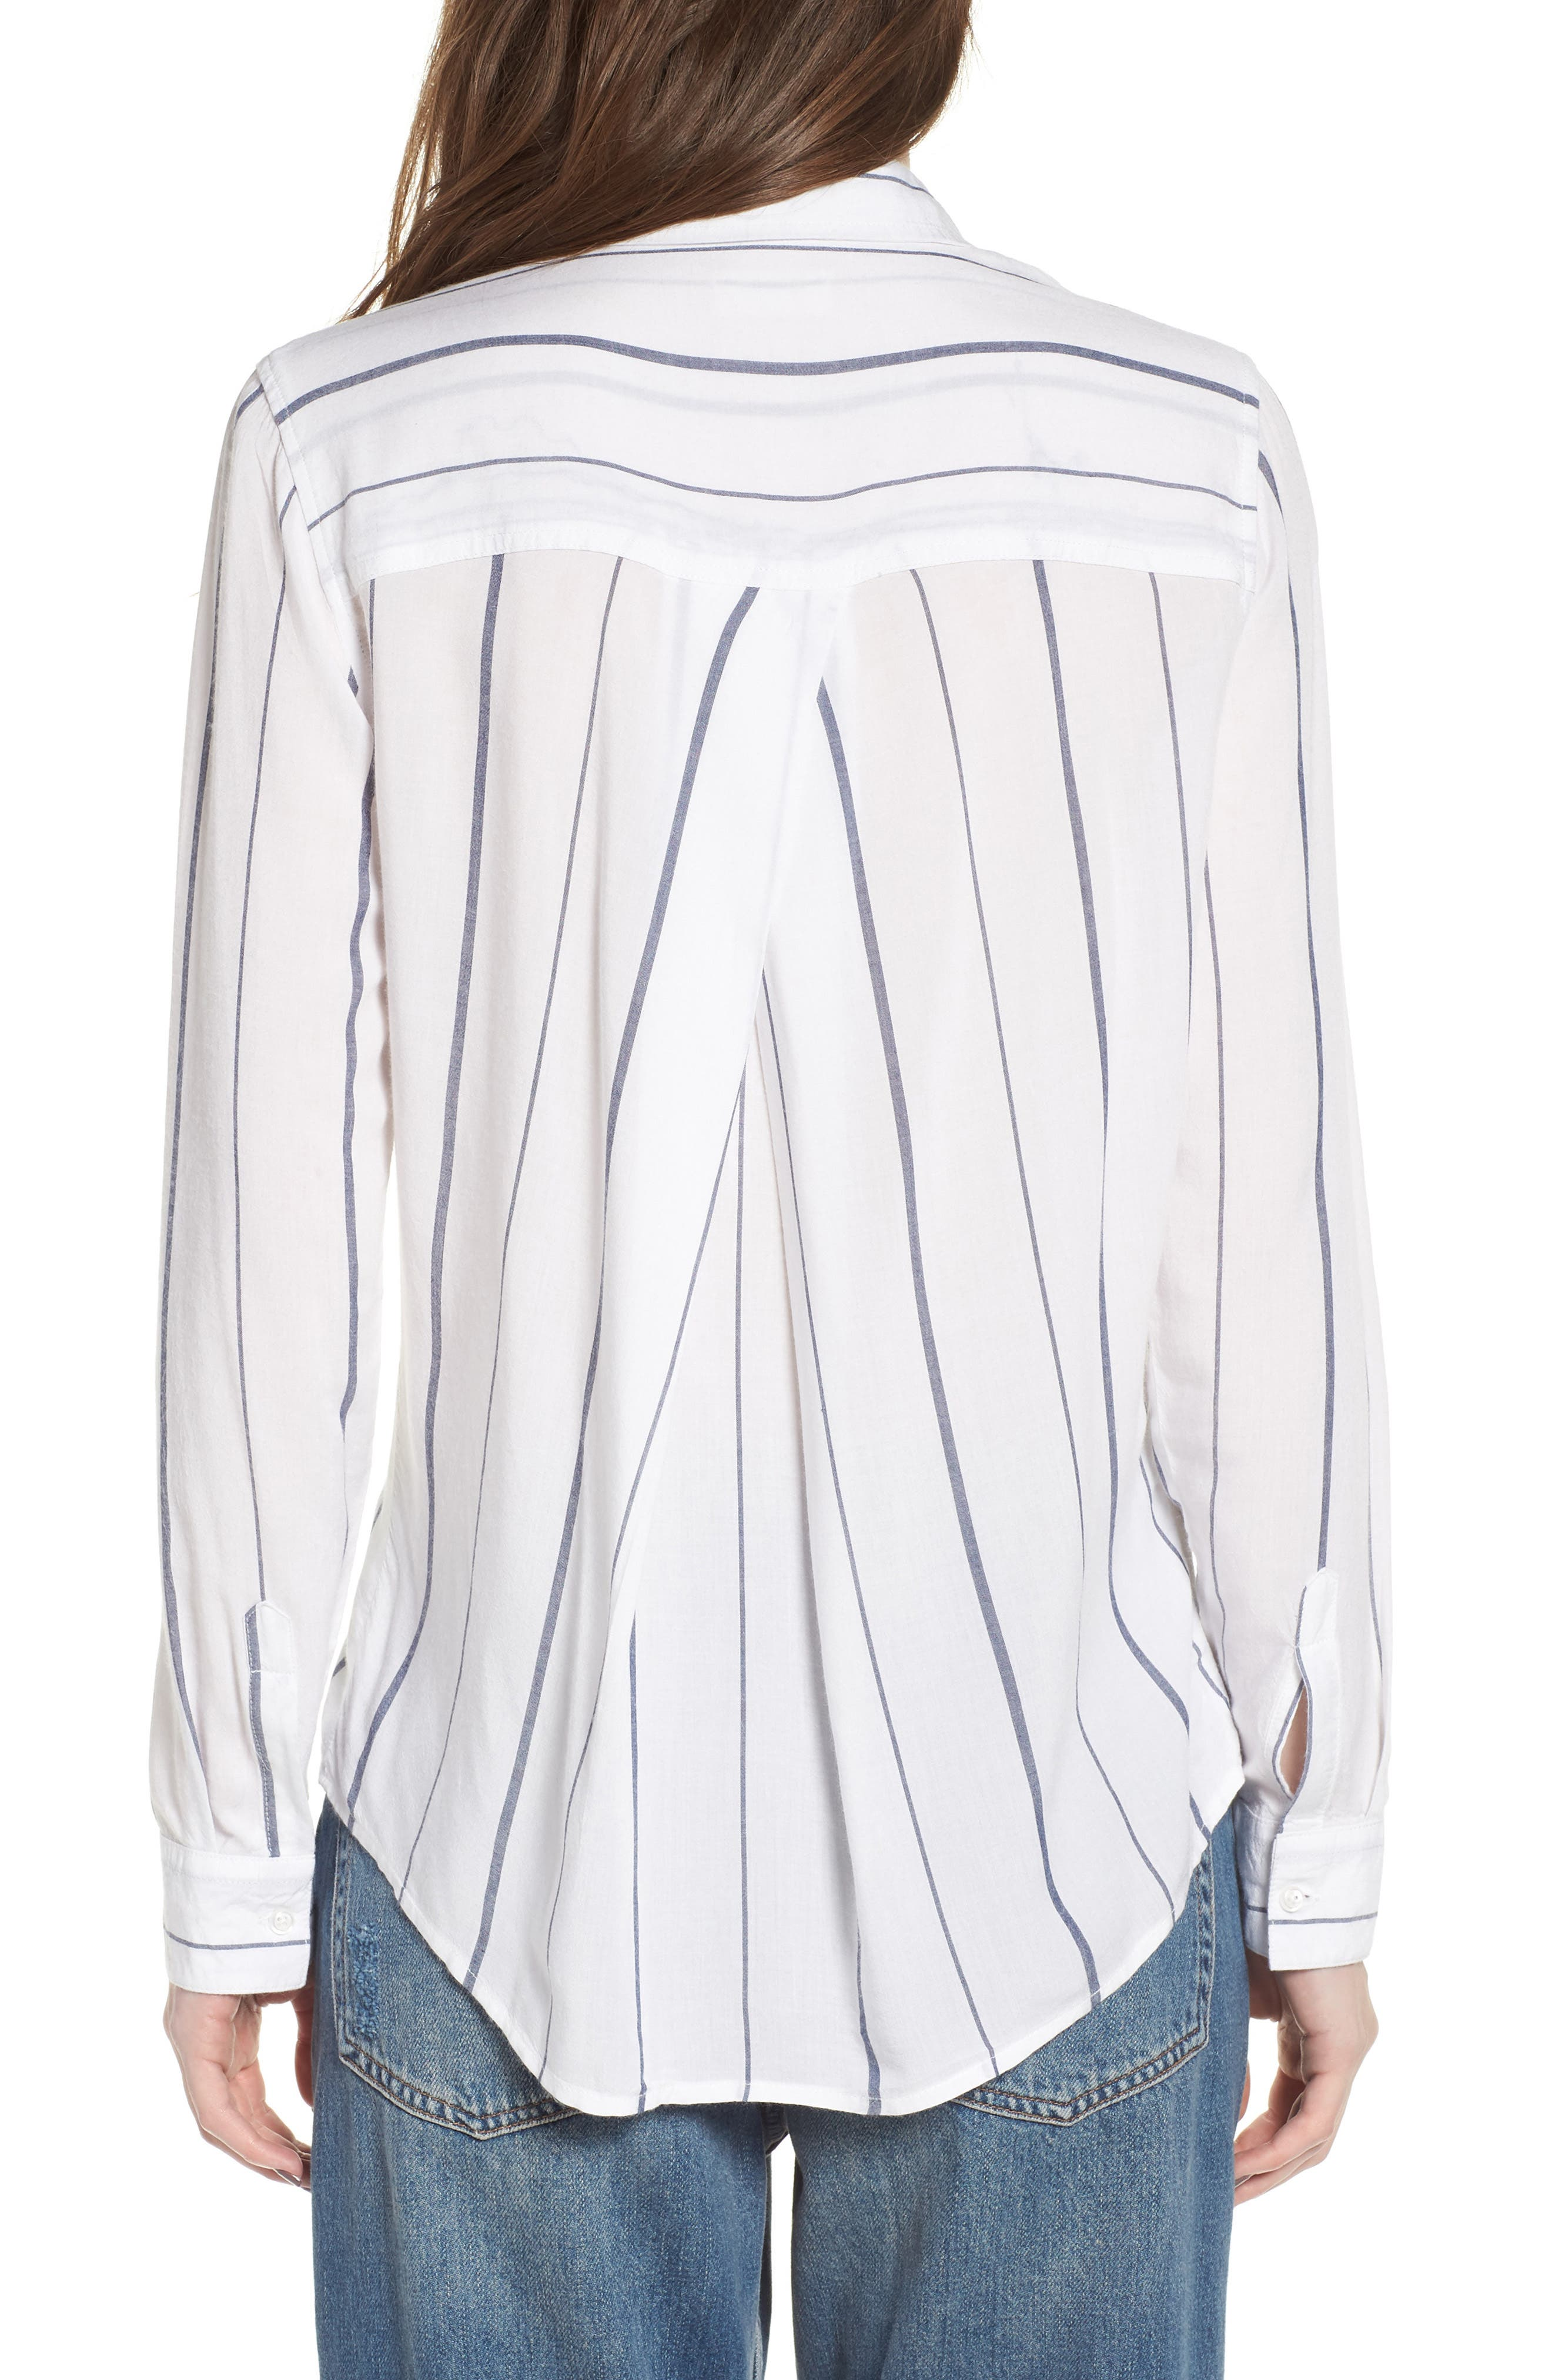 Canyons Stripe Shirt,                             Alternate thumbnail 2, color,                             White/ Navy Stripe